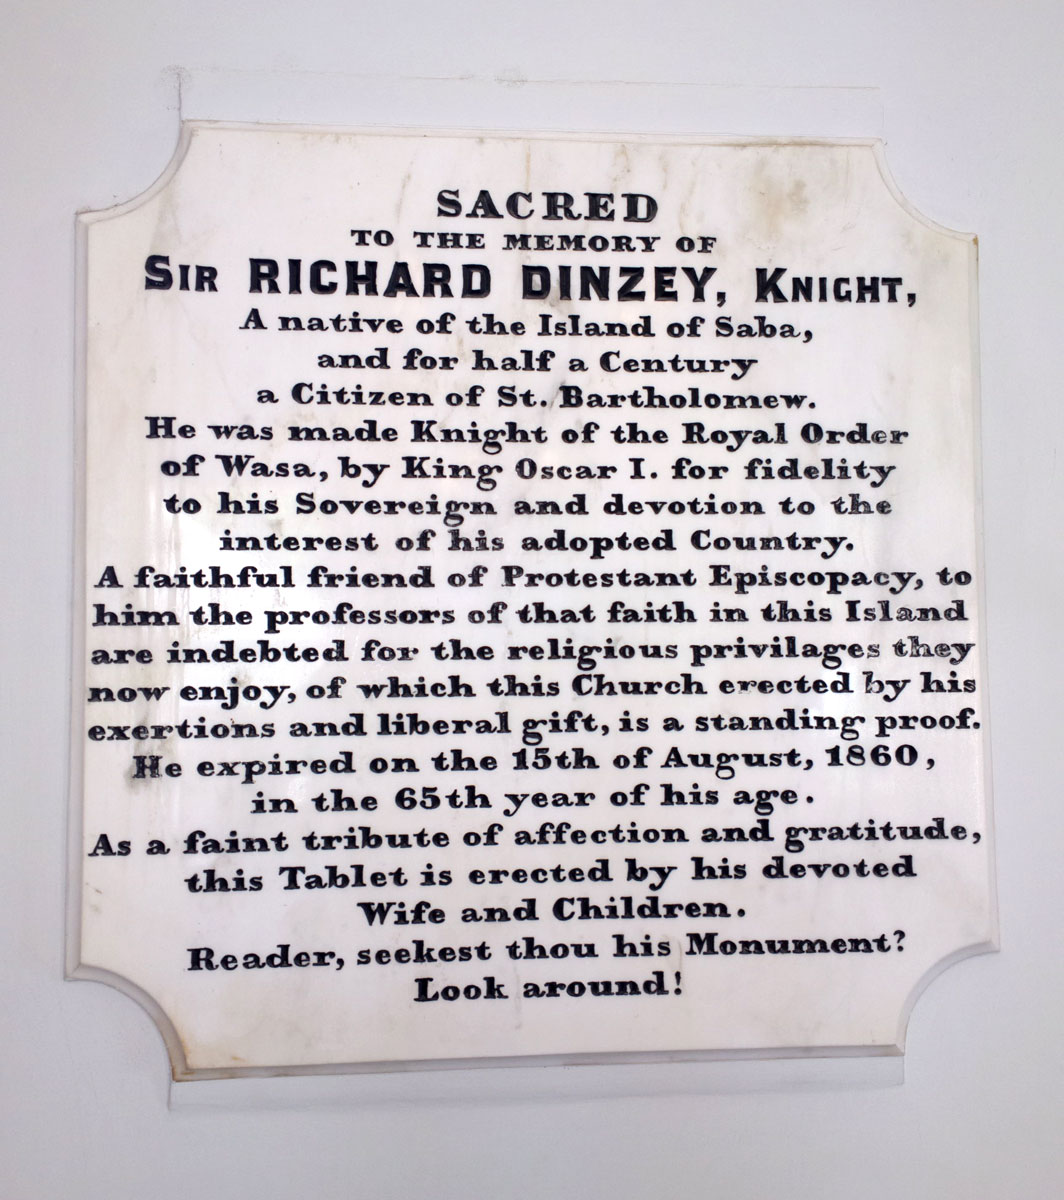 Sir Richard Dinzey was made a Knight of the Royal Order of Wasa by King Oscar I of Sweden. - This memorial plaque is inside the Anglican Church.